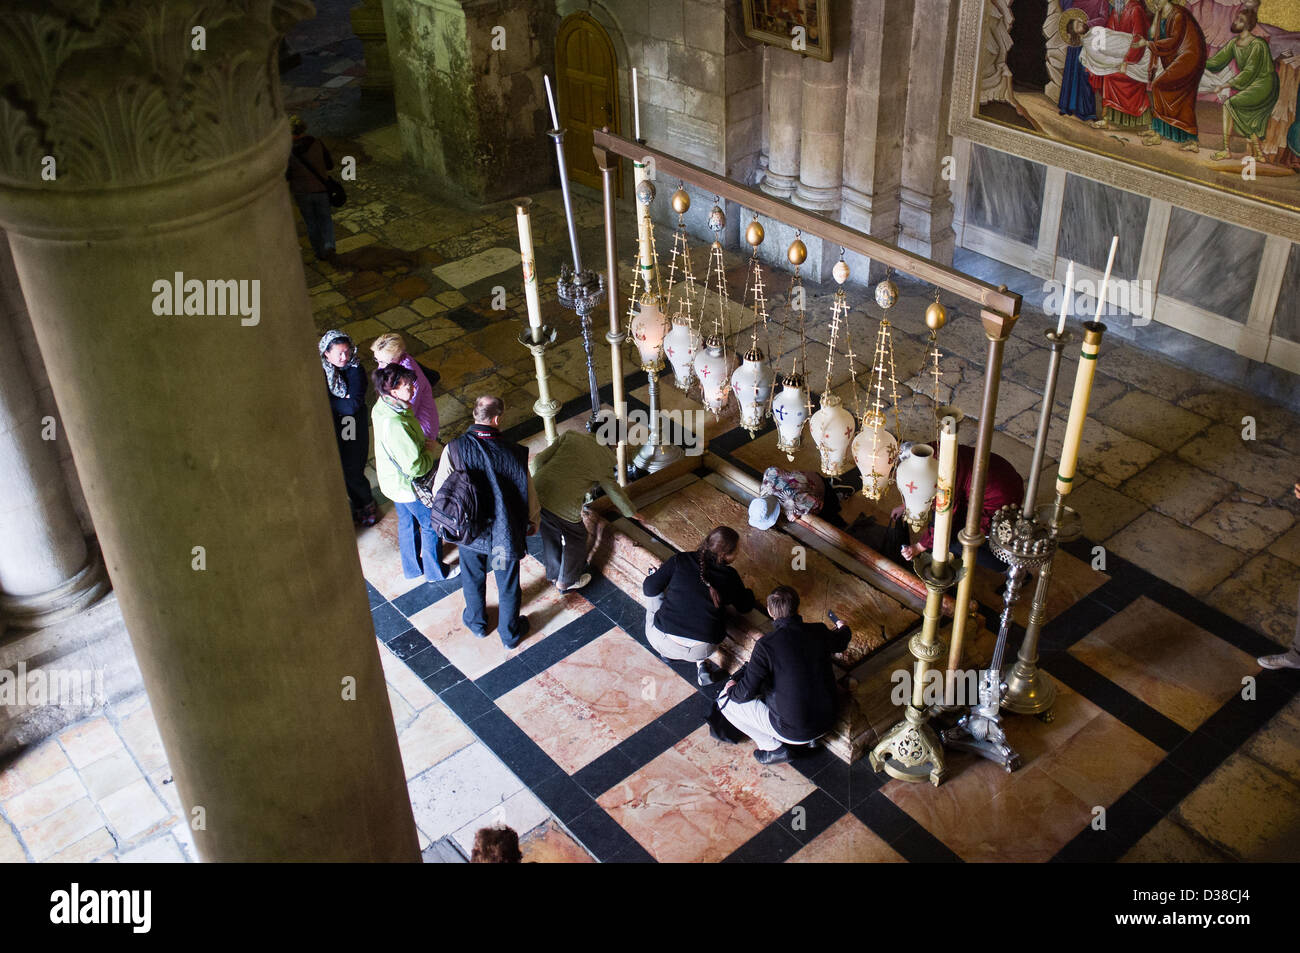 Jerusalem, Israel. 13th February 2013. Christian devotees kneel before the Stone of Unction, also known as the Stone Stock Photo